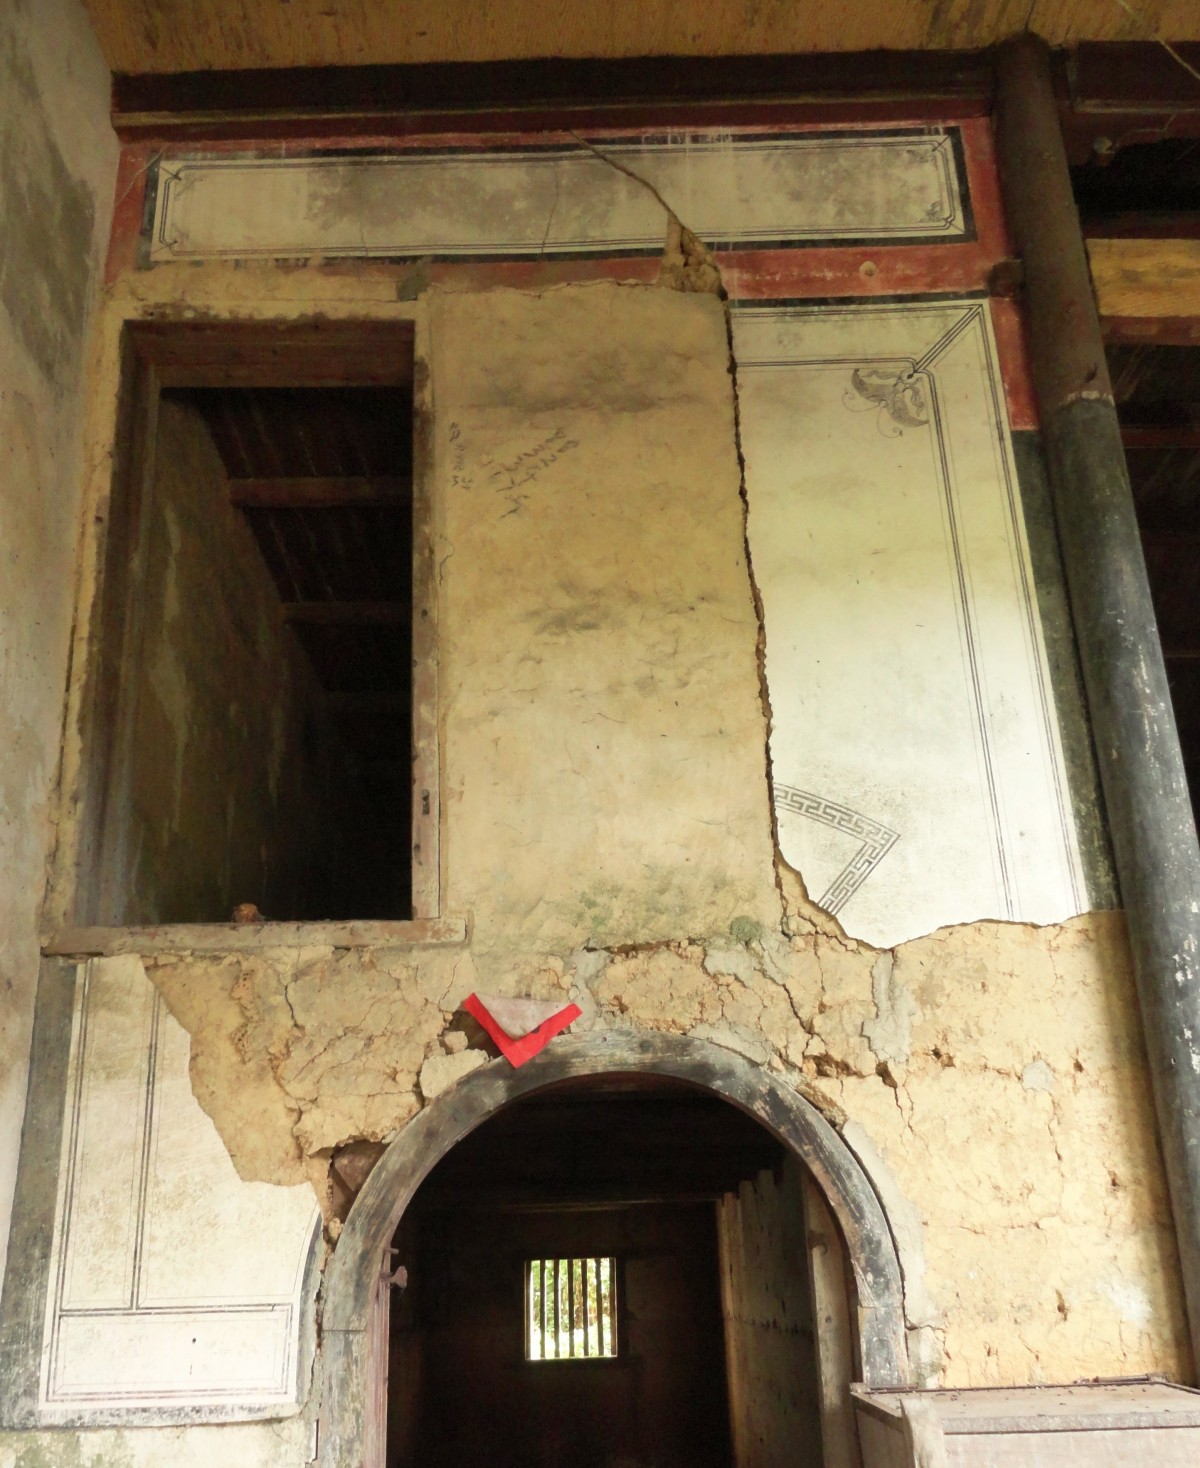 2d8e54041 Building limes for cultural heritage conservation in China ...